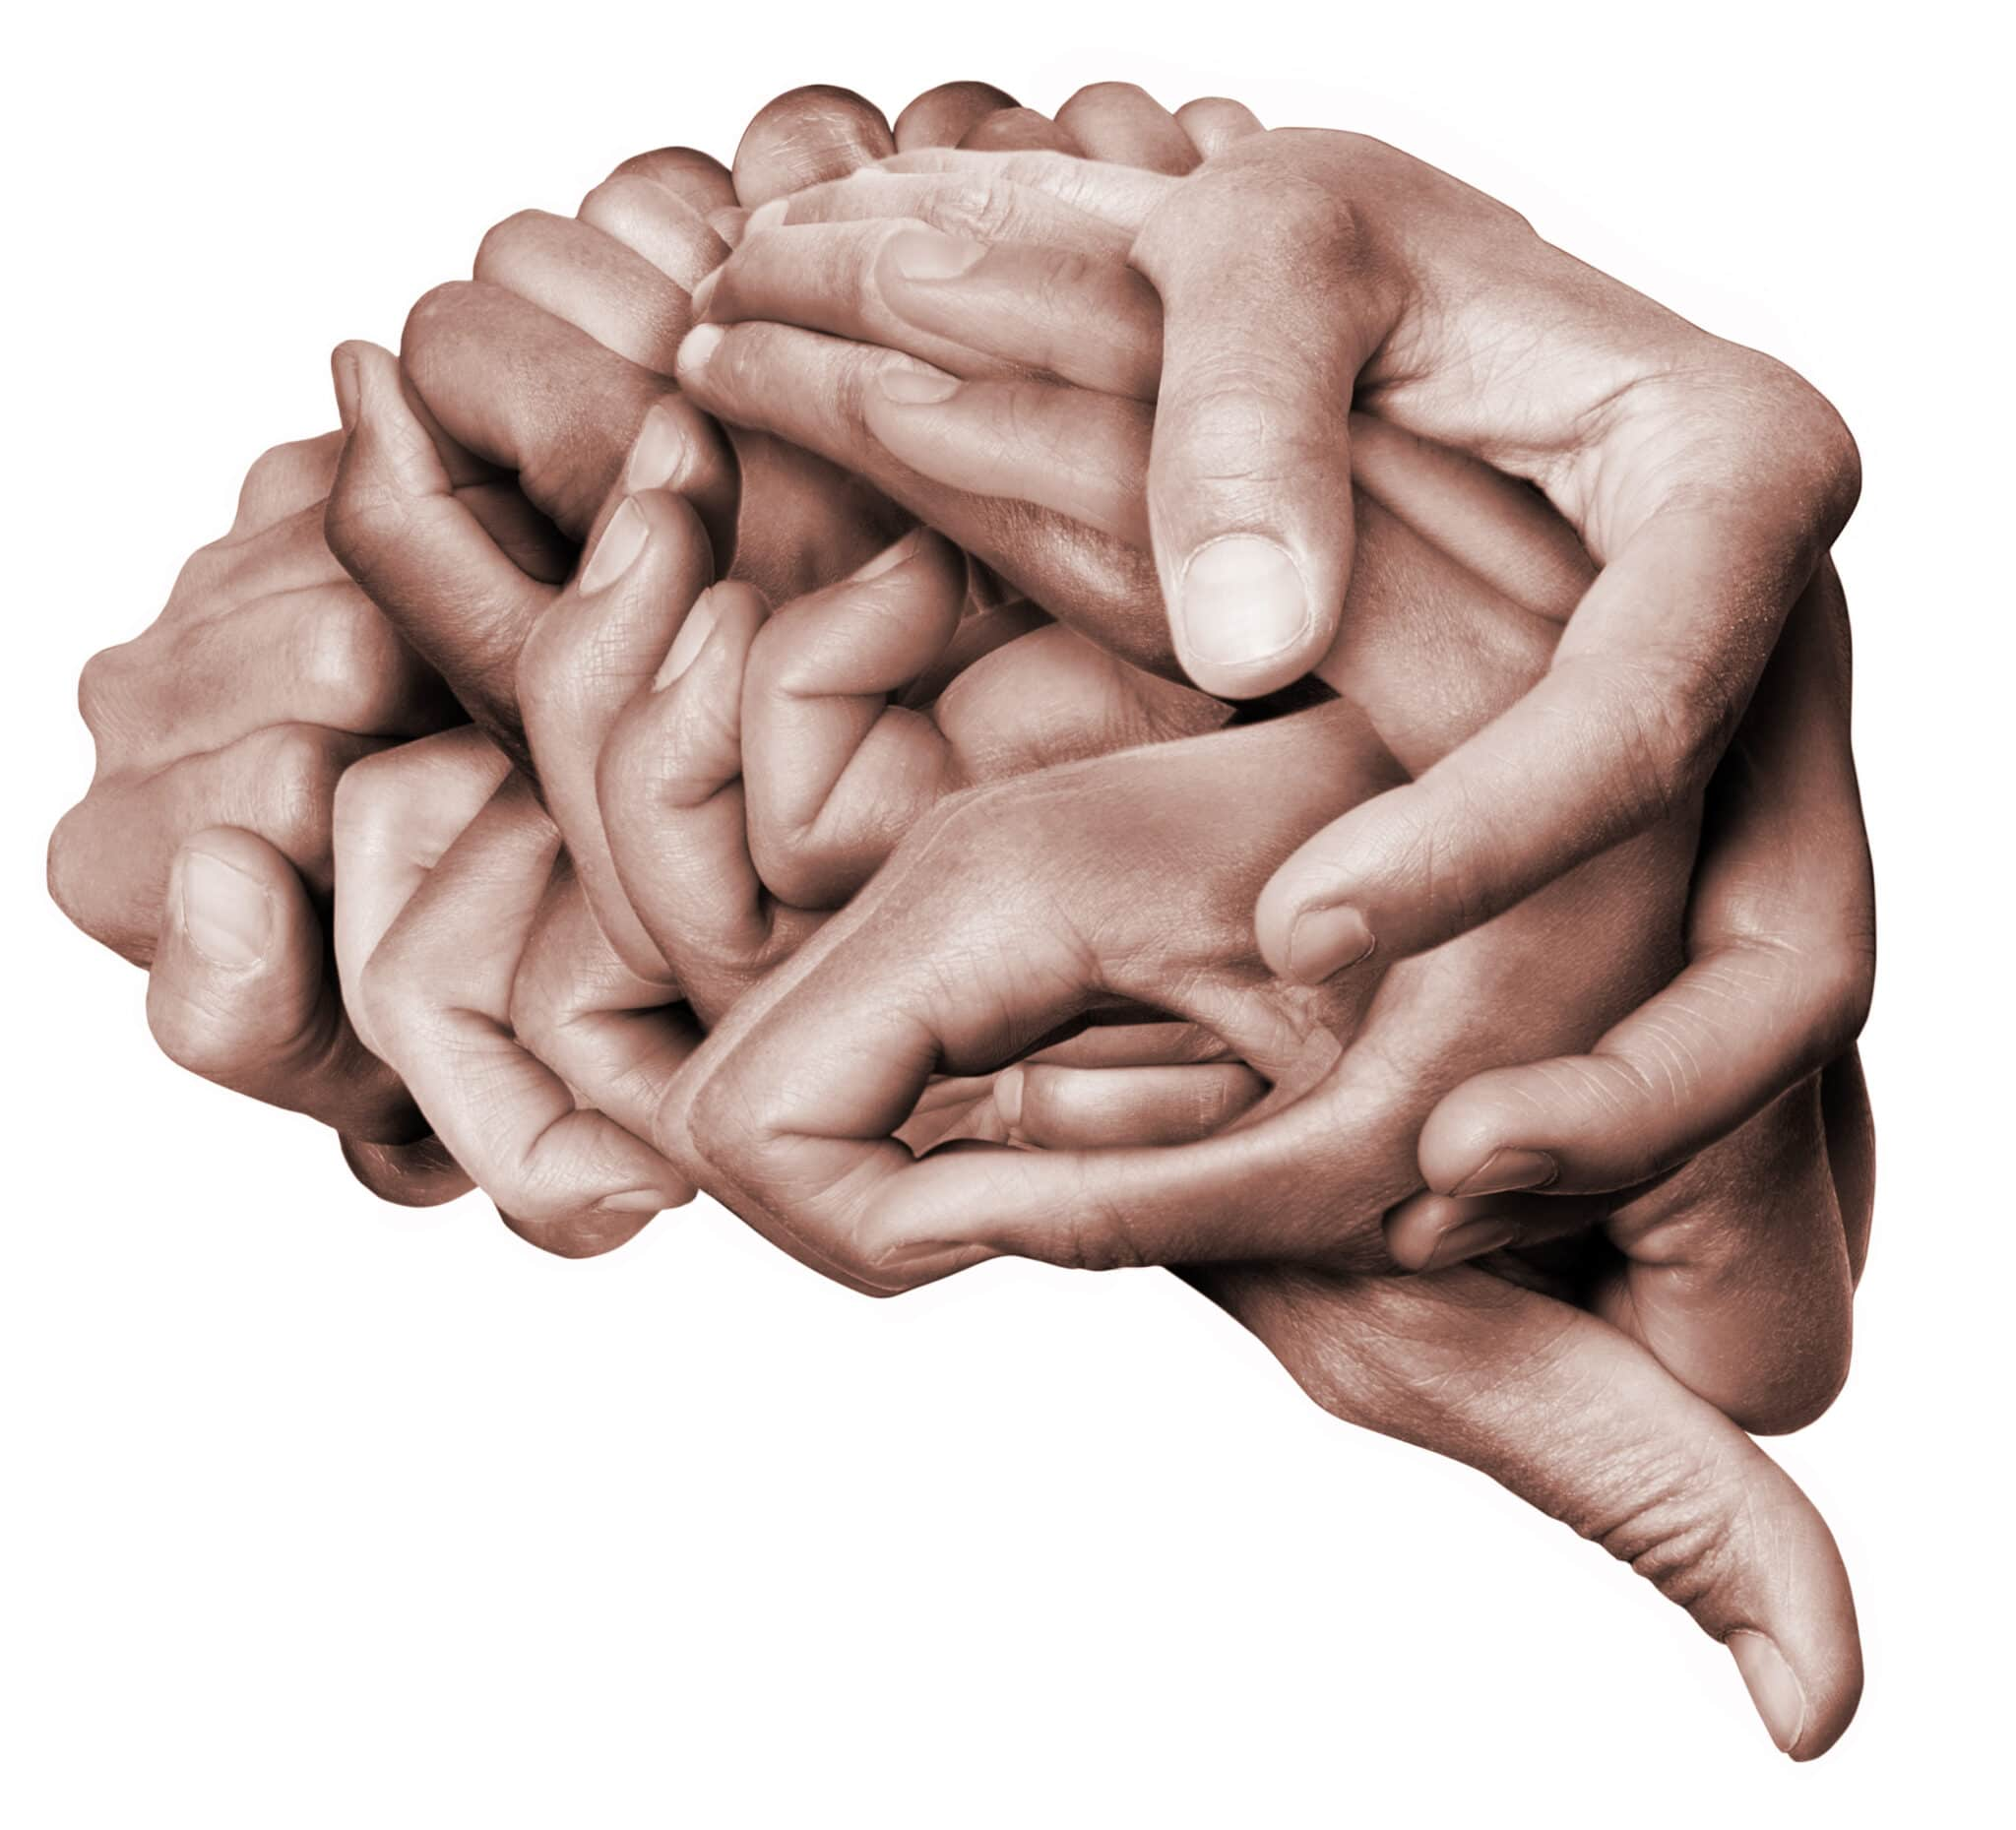 A,Human,Brain,Made,With,Hands,,Different,Hands,Are,Wrapped